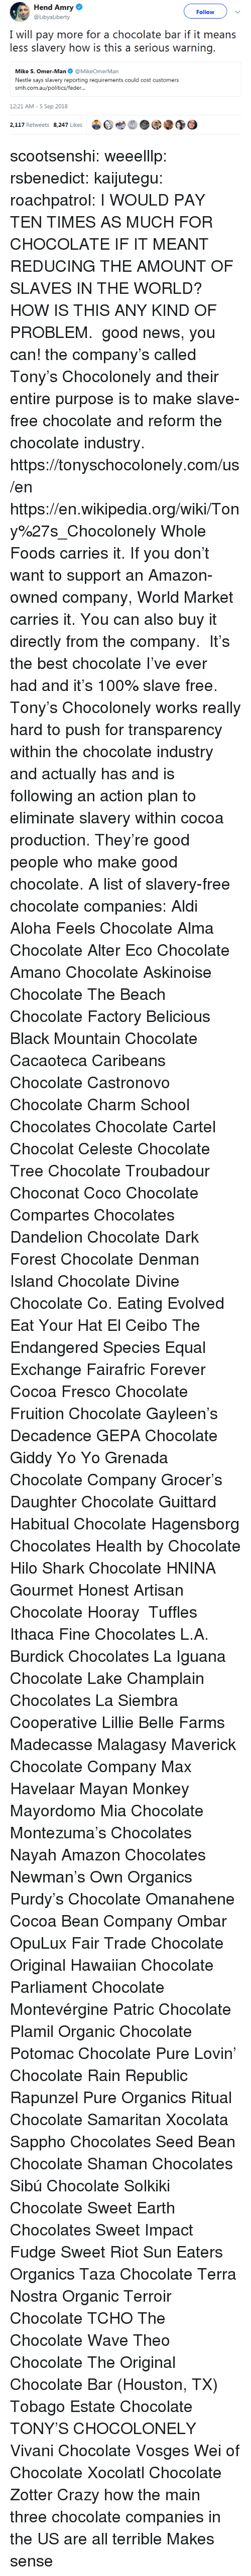 Amazon, Anaconda, and CoCo: Hend Amry  @LibyaLiberty  Follow  I will pay more for a chocolate bar if it means  less slavery how is this a serious warning.  Mike S. Omer-Man@MikeOmerMan  Nestle says slavery reporting requirements could cost customers  srmi.exiiauafoliiicxi/icxlkir...  12:21 AM-5 Sep 2018  2,117 Retweets 8.247 Likes  bet  @③ scootsenshi:  weeelllp:  rsbenedict:  kaijutegu:  roachpatrol: I WOULD PAY TEN TIMES AS MUCH FOR CHOCOLATE IF IT MEANT REDUCING THE AMOUNT OF SLAVES IN THE WORLD? HOW IS THIS ANY KIND OF PROBLEM.  good news, you can! the company's called Tony's Chocolonely and their entire purpose is to make slave-free chocolate and reform the chocolate industry. https://tonyschocolonely.com/us/en https://en.wikipedia.org/wiki/Tony%27s_Chocolonely Whole Foods carries it. If you don't want to support an Amazon-owned company, World Market carries it. You can also buy it directly from the company.  It's the best chocolate I've ever had and it's 100% slave free. Tony's Chocolonely works really hard to push for transparency within the chocolate industry and actually has and is following an action plan to eliminate slavery within cocoa production. They're good people who make good chocolate.  A list of slavery-free chocolate companies:  Aldi  Aloha Feels Chocolate  Alma Chocolate  Alter Eco Chocolate  Amano Chocolate  Askinoise Chocolate  The Beach Chocolate Factory  Belicious  Black Mountain Chocolate  Cacaoteca  Caribeans Chocolate  Castronovo Chocolate  Charm School Chocolates  Chocolate Cartel  Chocolat Celeste  Chocolate Tree  Chocolate Troubadour  Choconat  Coco Chocolate  Compartes Chocolates  Dandelion Chocolate  Dark Forest Chocolate  Denman Island Chocolate  Divine Chocolate Co.  Eating Evolved  Eat Your Hat  El Ceibo  The Endangered Species  Equal Exchange  Fairafric  Forever Cocoa  Fresco Chocolate  Fruition Chocolate  Gayleen's Decadence  GEPA Chocolate  Giddy Yo Yo  Grenada Chocolate Company  Grocer's Daughter Chocolate  Guittard  Habitual Chocolate  Hagensborg Chocolates  Health by Chocolate  Hilo Shark Chocolate  HNINA Gourmet  Honest Artisan Chocolate  Hooray  Tuffles Ithaca Fine Chocolates  L.A. Burdick Chocolates  La Iguana Chocolate  Lake Champlain Chocolates  La Siembra Cooperative  Lillie Belle Farms  Madecasse  Malagasy  Maverick Chocolate Company Max Havelaar  Mayan Monkey  Mayordomo  Mia Chocolate  Montezuma's Chocolates  Nayah Amazon Chocolates  Newman's Own Organics  Purdy's Chocolate  Omanahene Cocoa Bean Company  Ombar  OpuLux Fair Trade Chocolate  Original Hawaiian Chocolate  Parliament Chocolate  Montevérgine  Patric Chocolate  Plamil Organic Chocolate  Potomac Chocolate  Pure Lovin' Chocolate  Rain Republic  Rapunzel Pure Organics  Ritual Chocolate  Samaritan Xocolata  Sappho Chocolates  Seed  Bean Chocolate  Shaman Chocolates  Sibú Chocolate  Solkiki Chocolate  Sweet Earth Chocolates  Sweet Impact Fudge  Sweet Riot  Sun Eaters Organics  Taza Chocolate  Terra Nostra Organic  Terroir Chocolate  TCHO  The Chocolate Wave  Theo Chocolate  The Original Chocolate Bar (Houston, TX)  Tobago Estate Chocolate  TONY'S CHOCOLONELY  Vivani Chocolate  Vosges  Wei of Chocolate  Xocolatl Chocolate Zotter   Crazy how the main three chocolate companies in the US are all terrible    Makes sense